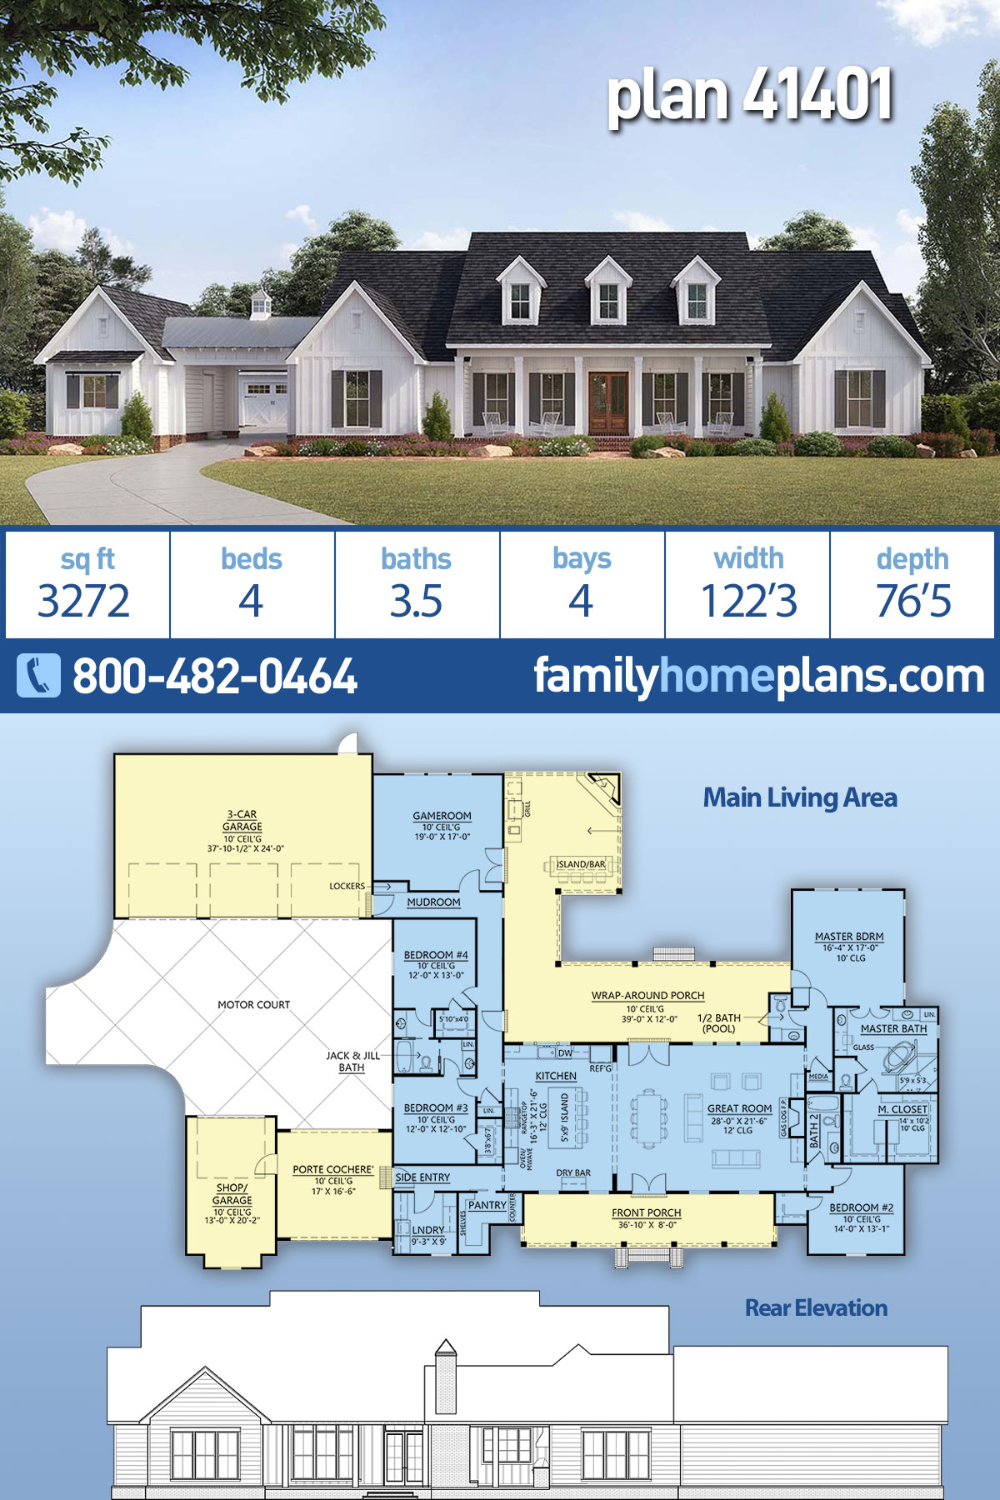 Traditional Style House Plan 41401 With 4 Bed 4 Bath 4 Car Garage Family House Plans Dream House Plans House Plans Farmhouse